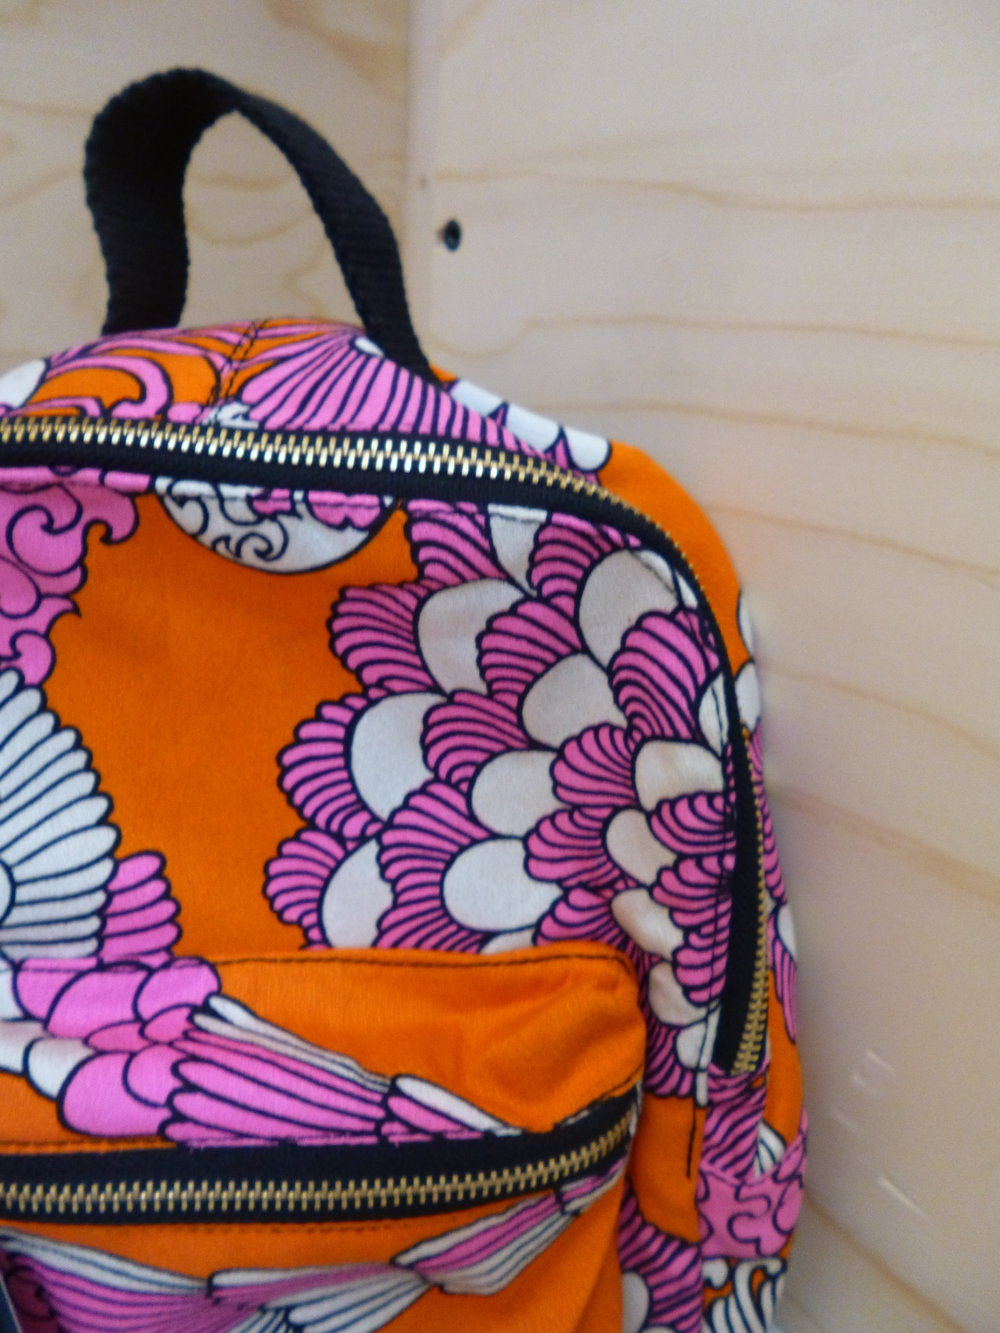 Beyond Retro Mini Dome Back Pack Orange Pink Fan Print